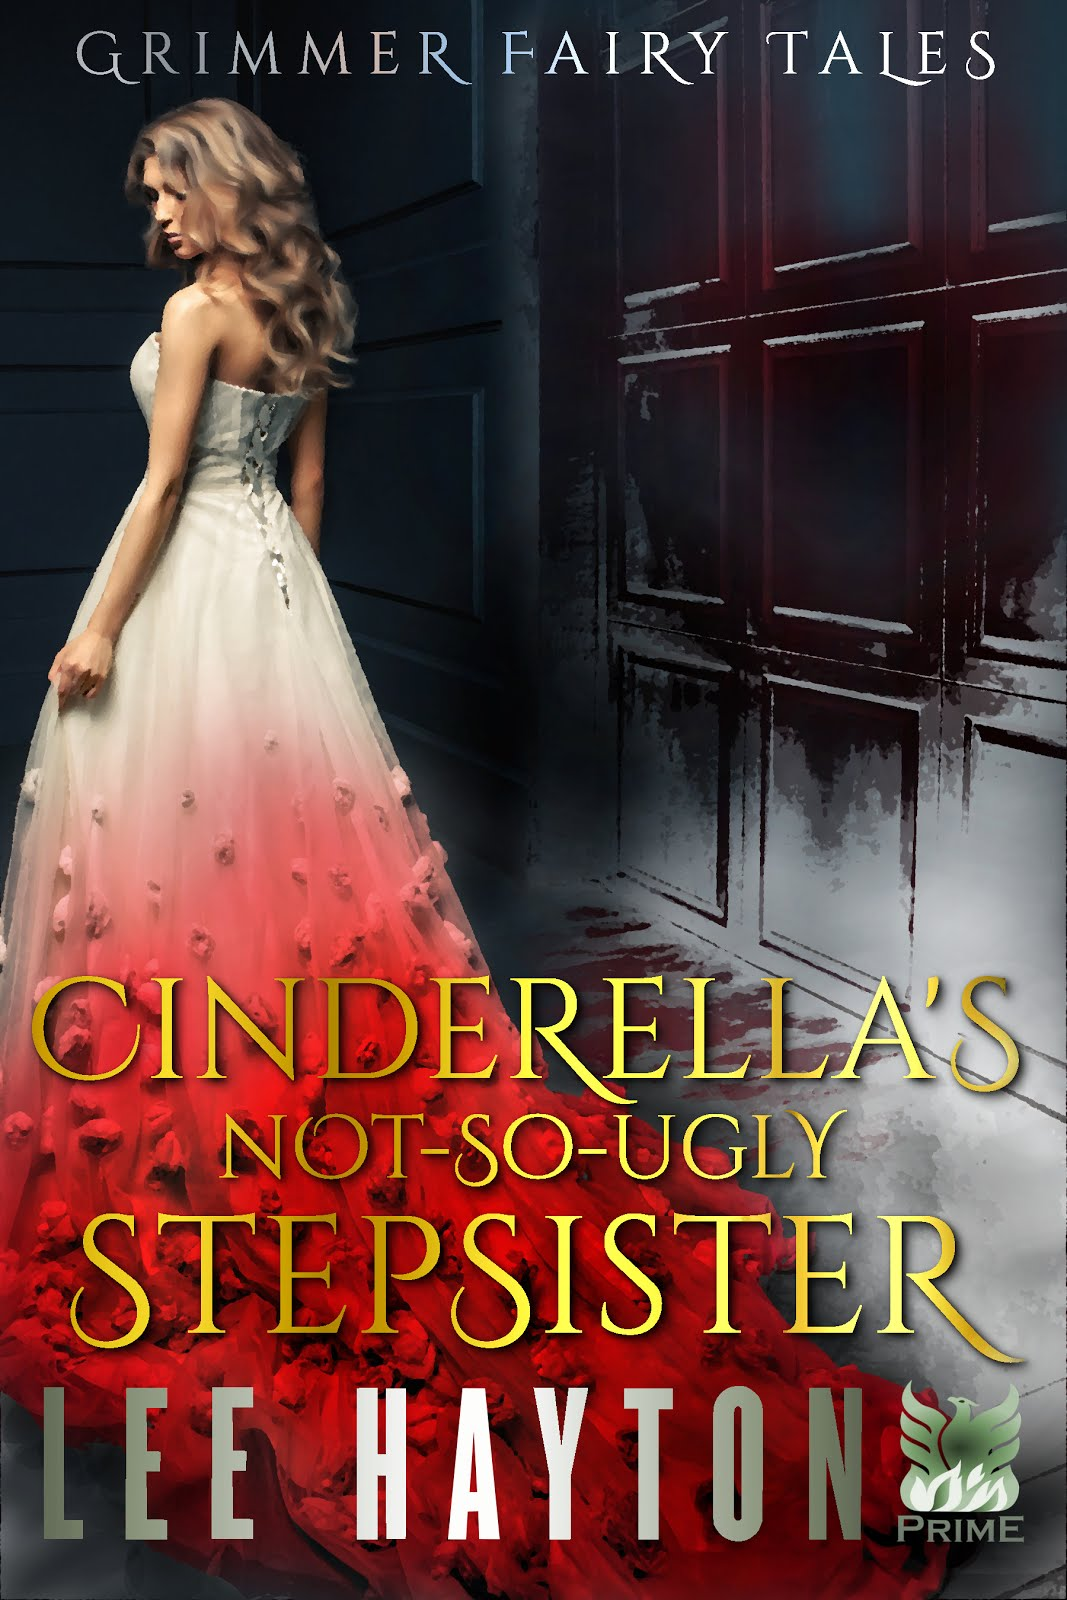 Cinderella's Not-So-Ugly Stepsister